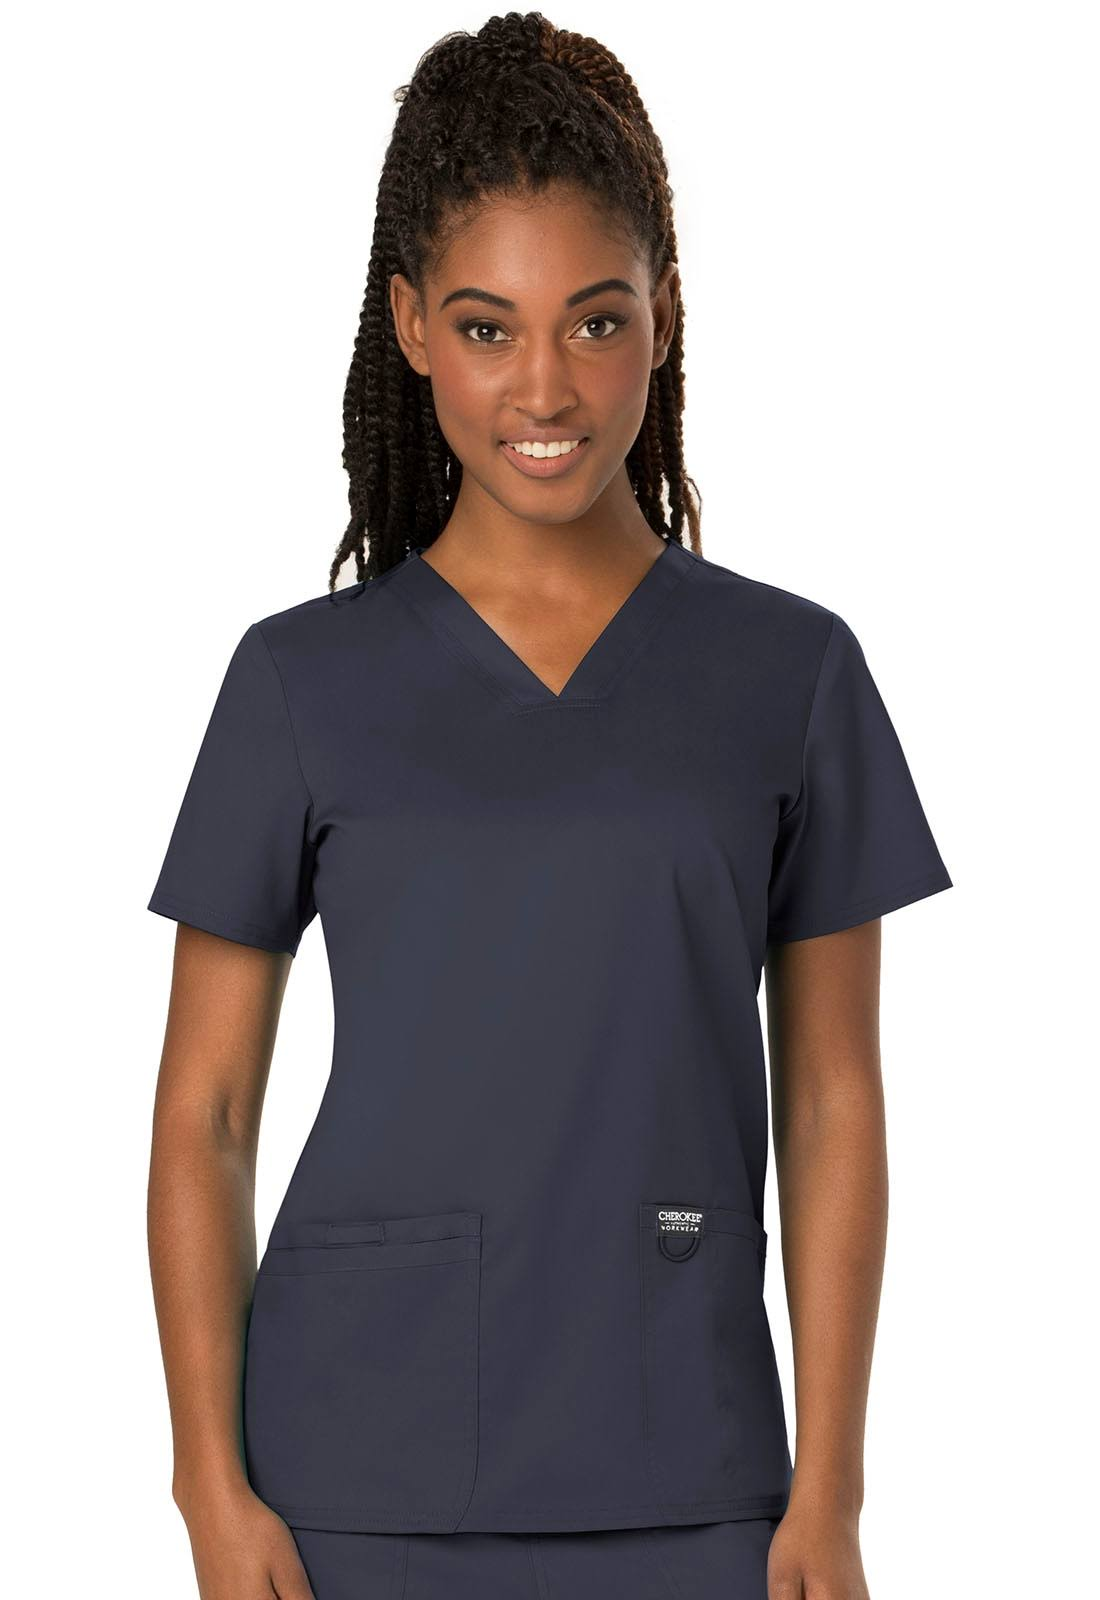 Cherokee Workwear Revolution V-Neck Scrub Top - Pewter XS